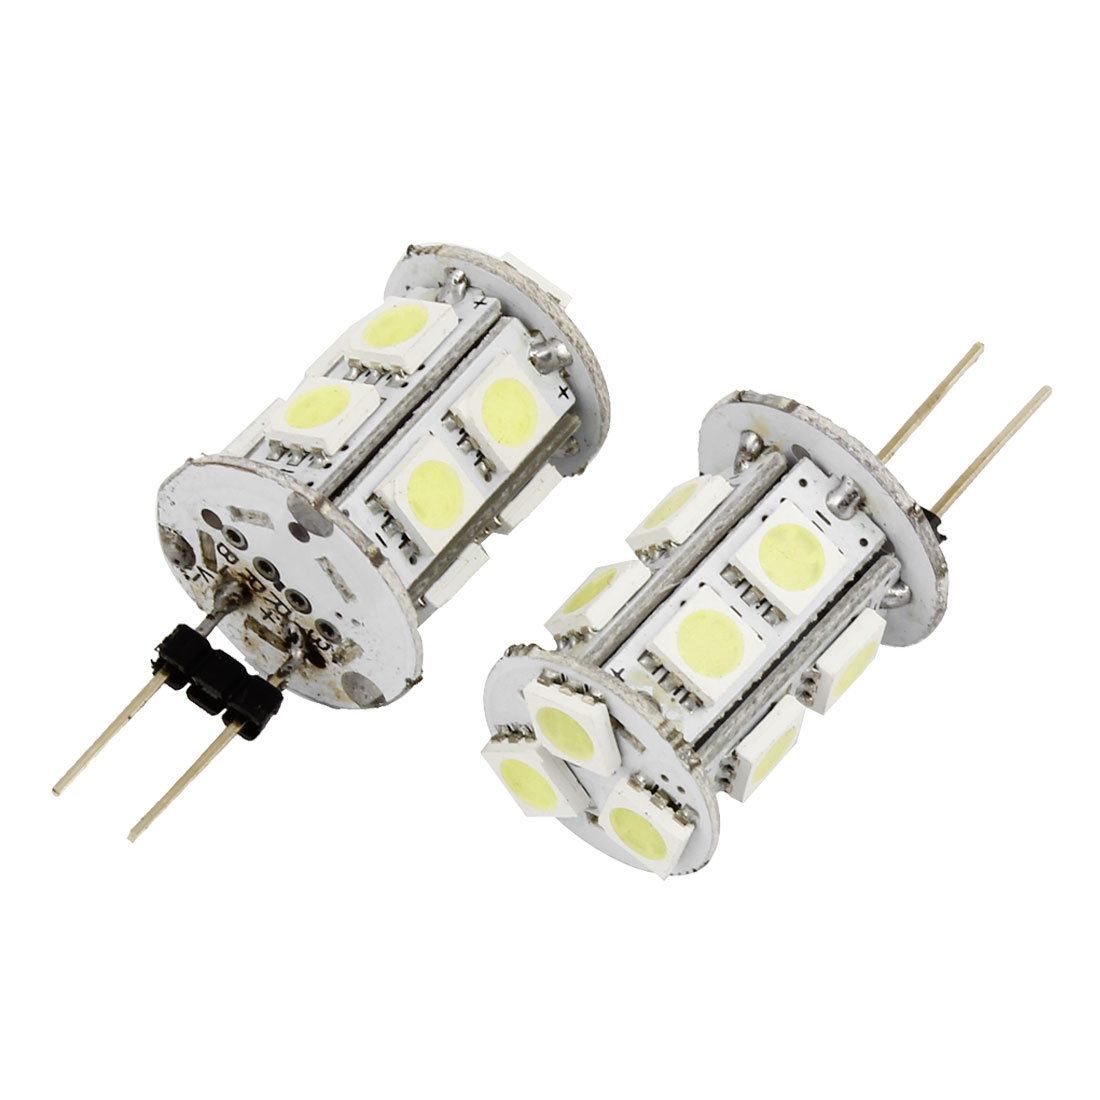 Car Bin Pin G4 5050 SMD 13-LEDs Tower Type White Marine Boat Light Lamp 2 Pcs Internal